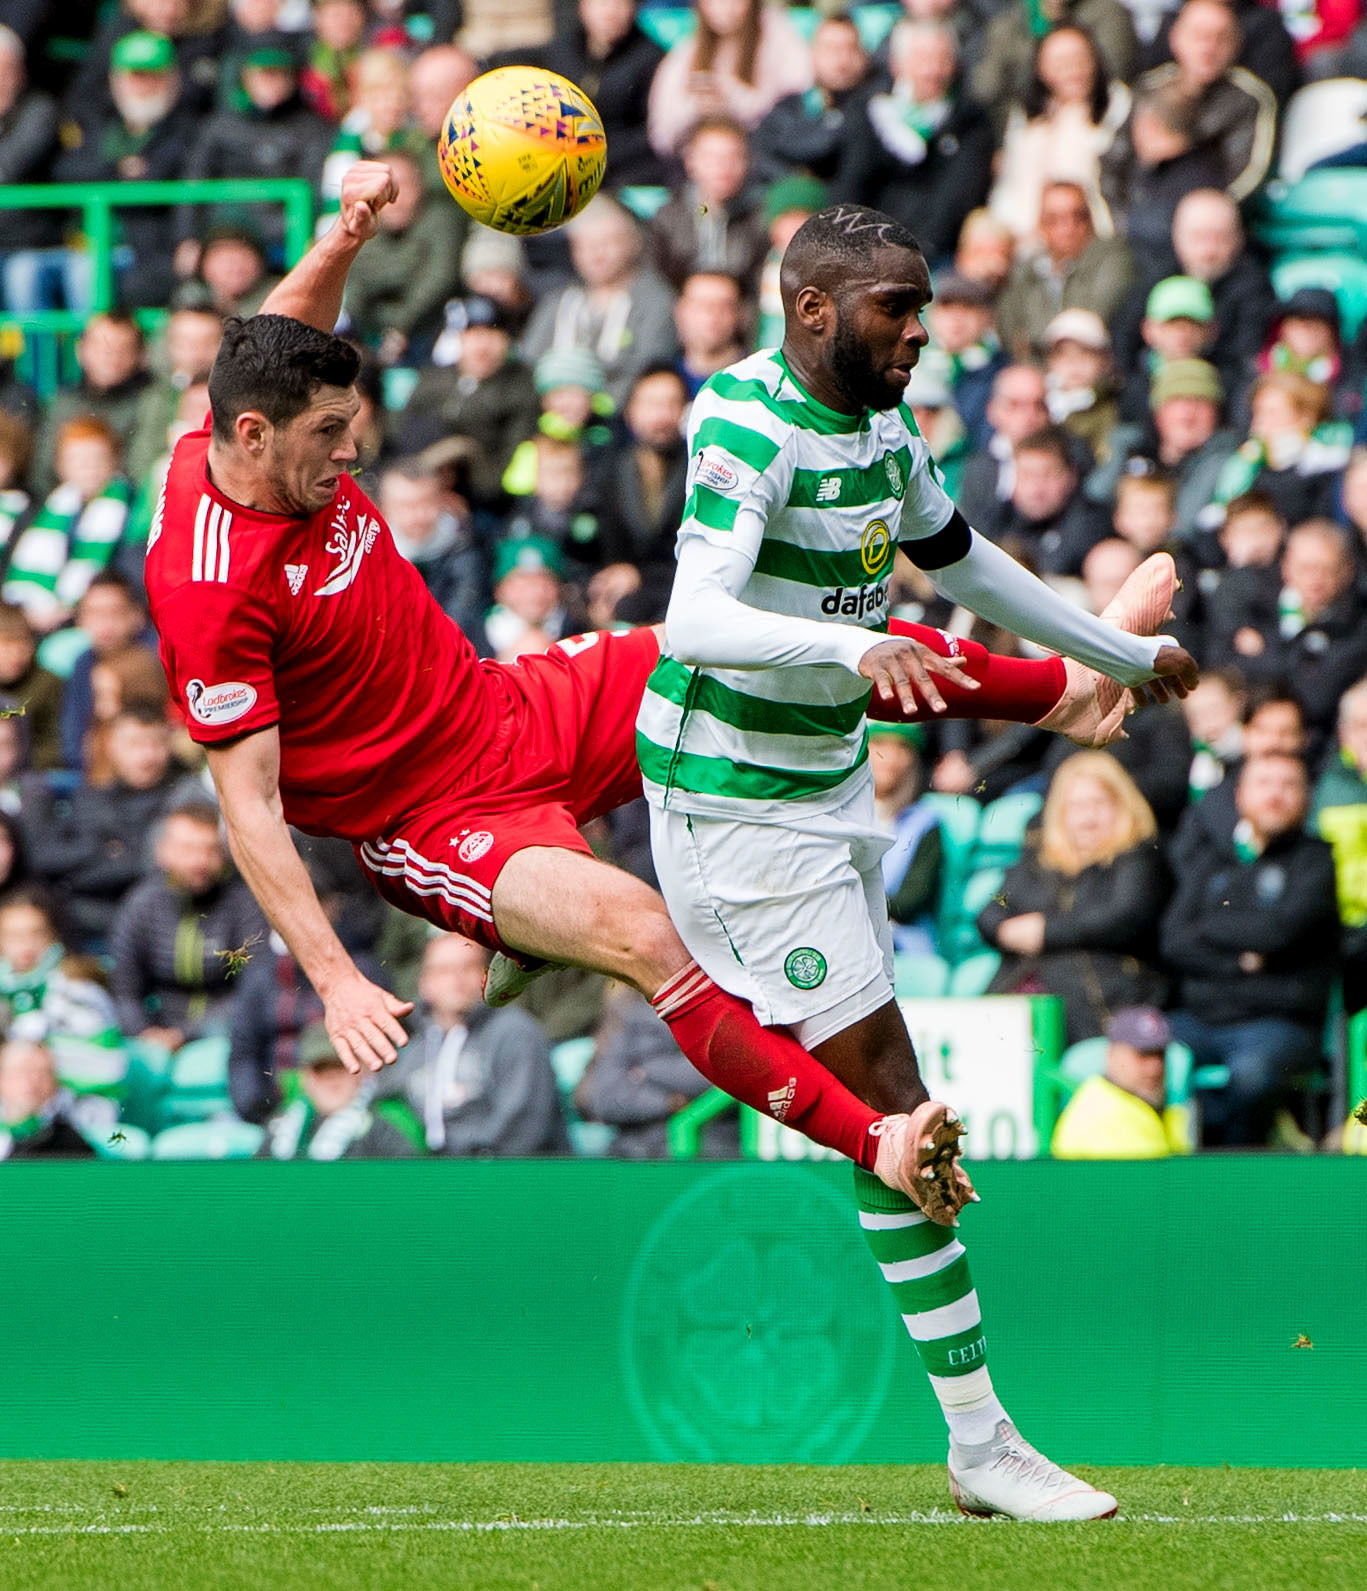 Celtic and Aberdeen will face one another at Hampden for the fourth time in three years in April's Scottish Cup semi-final